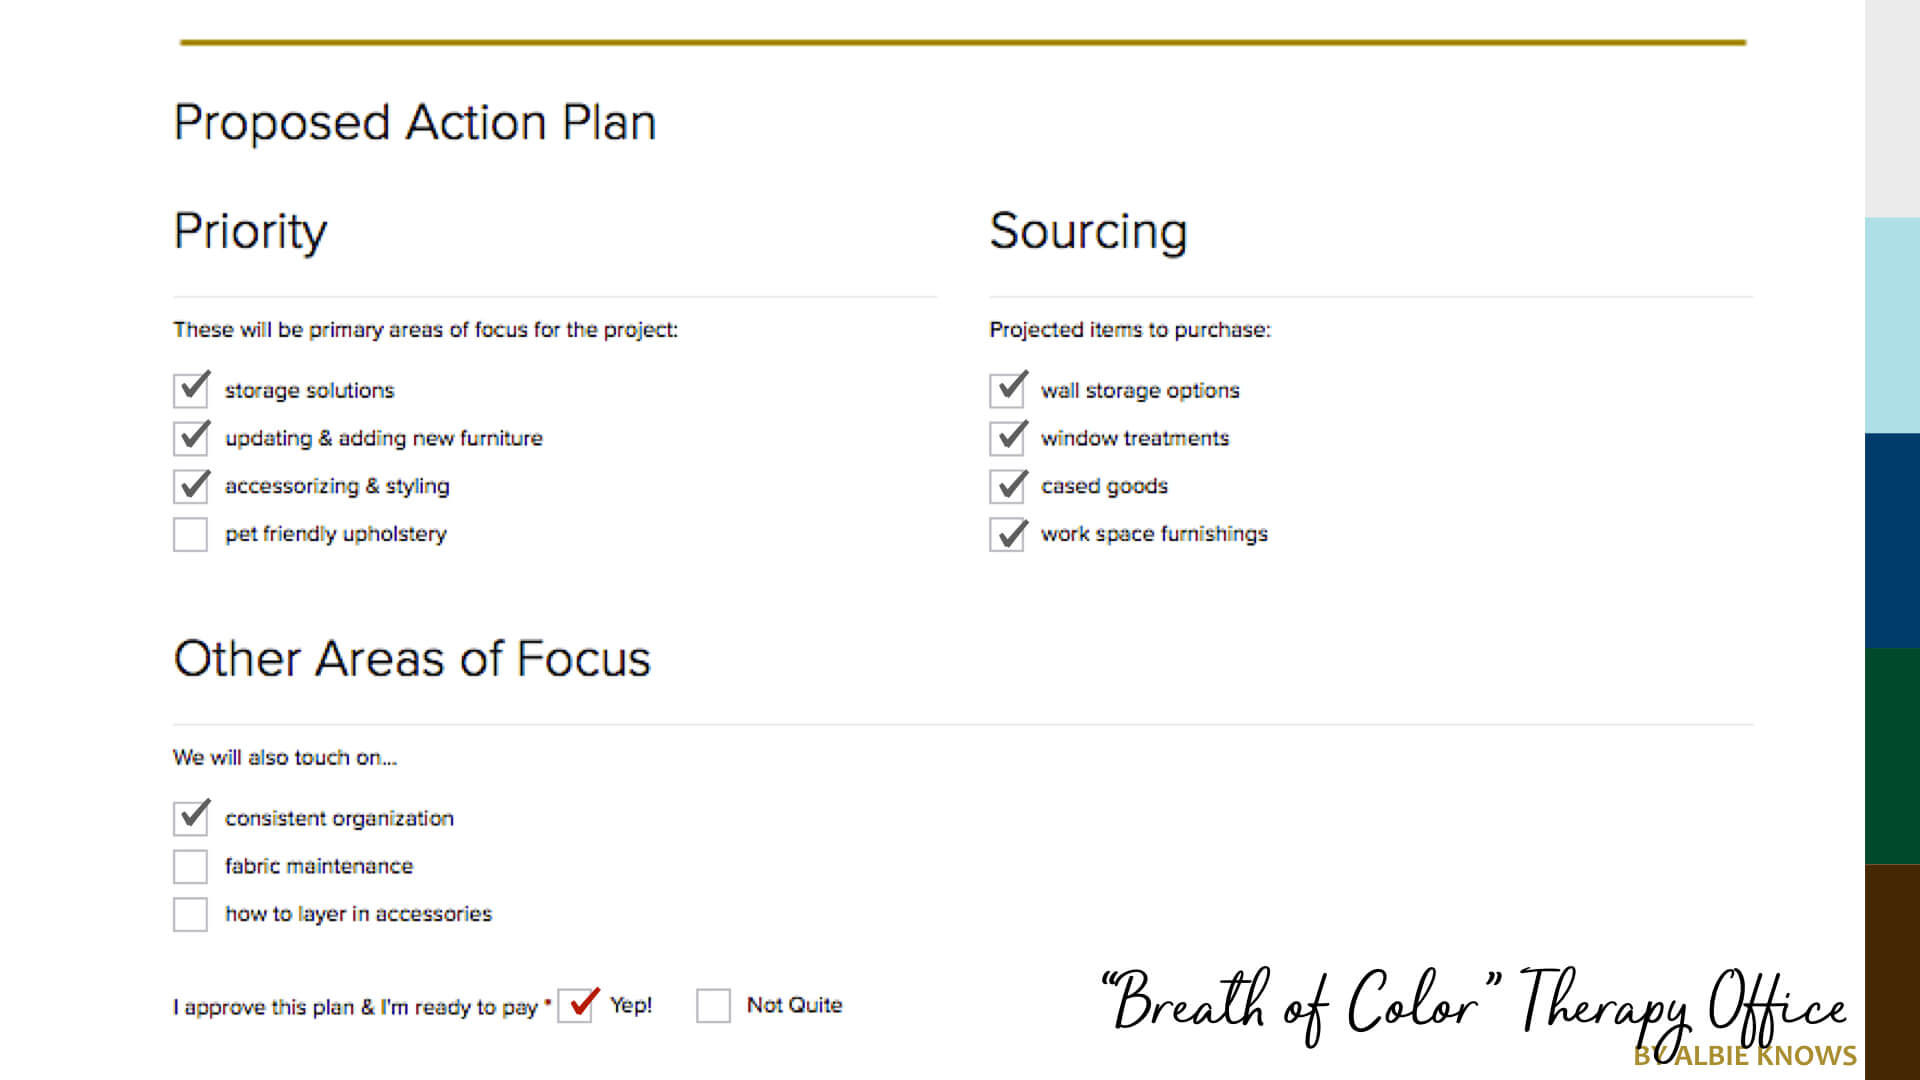 Creative Therapy Office Action Plan by Albie Knows